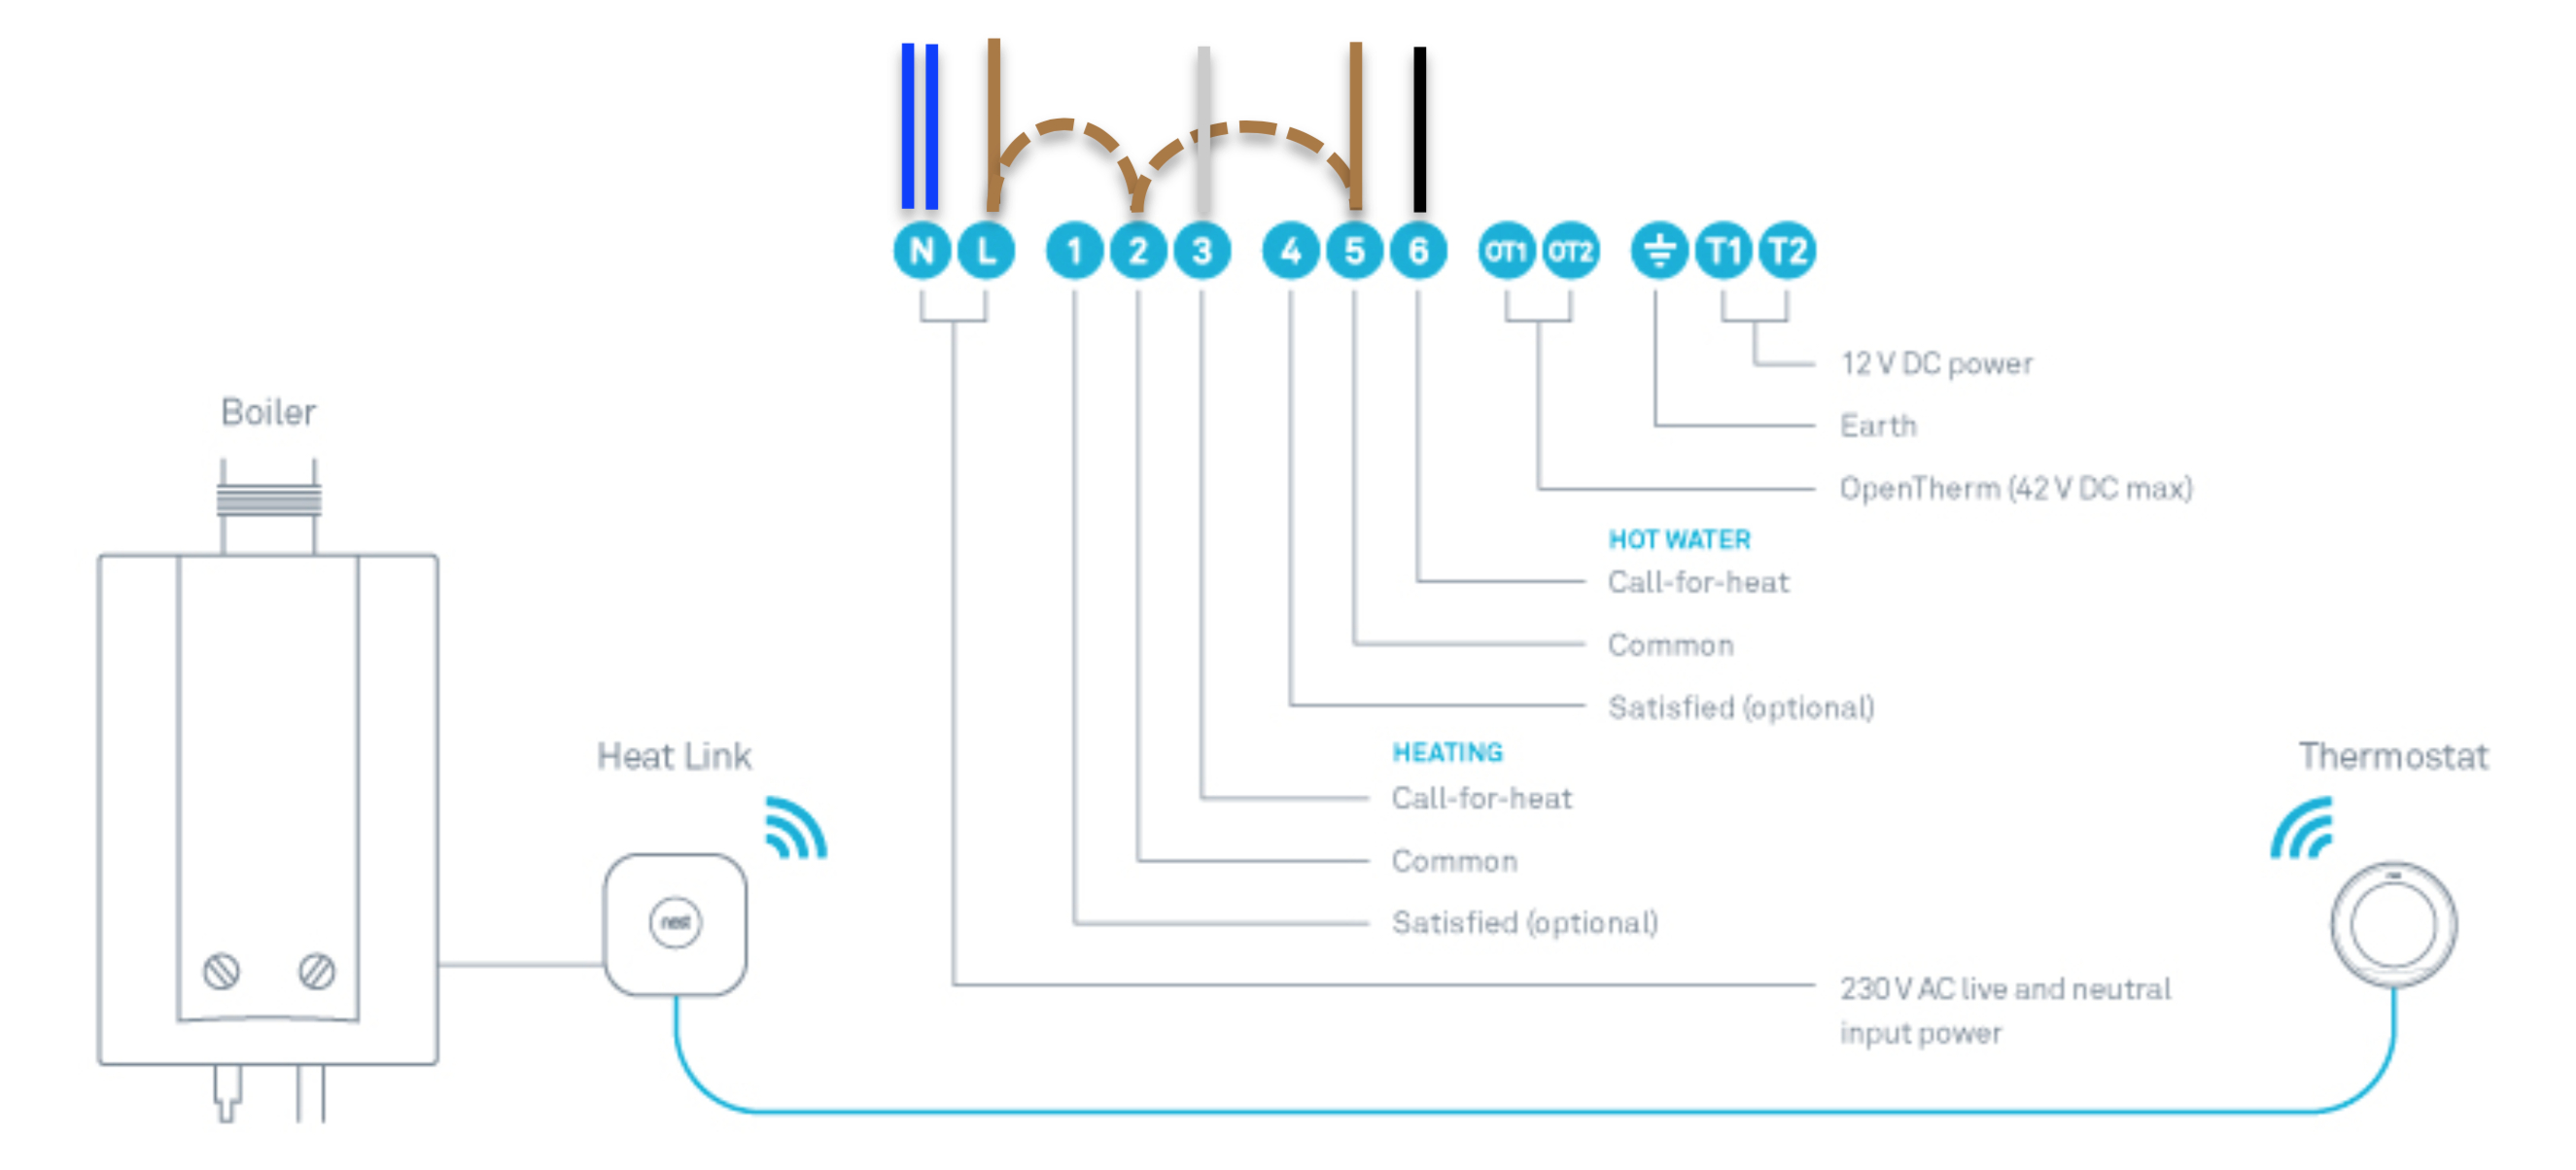 nest 3 wiring diagram Download-Screen Shot 2016 02 02 at 21 45 27 14-c